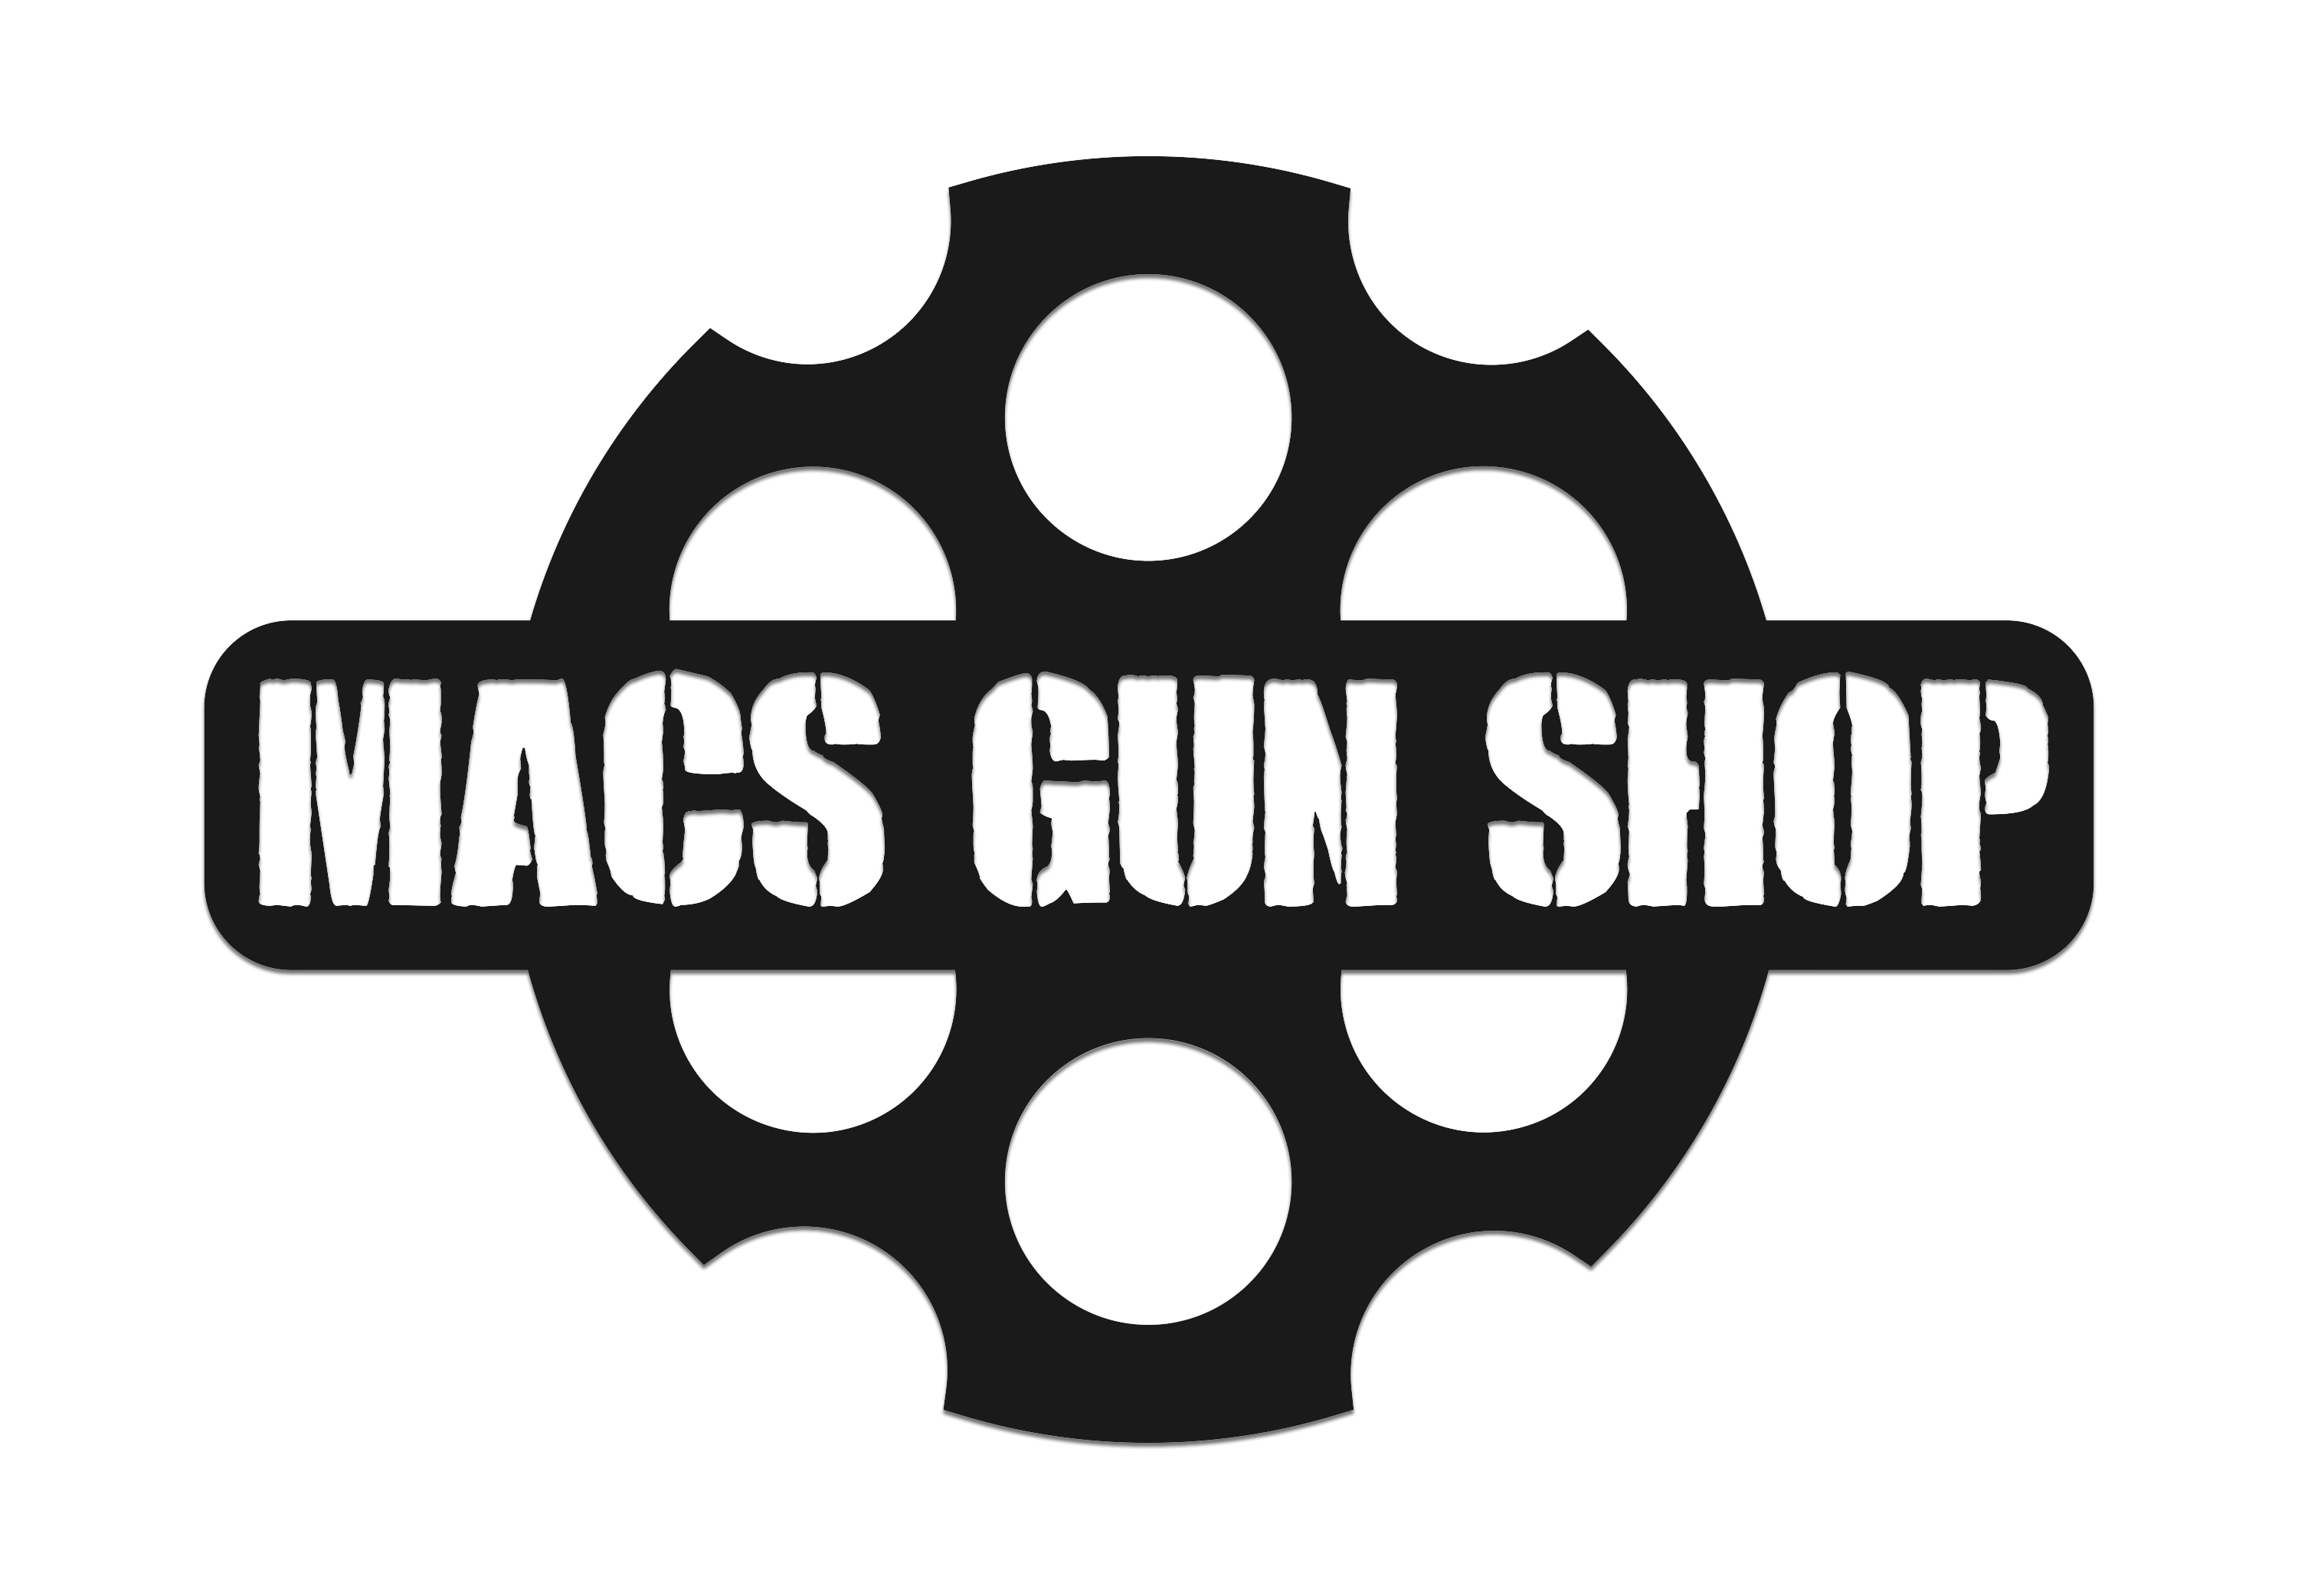 Mac's Gun Shop